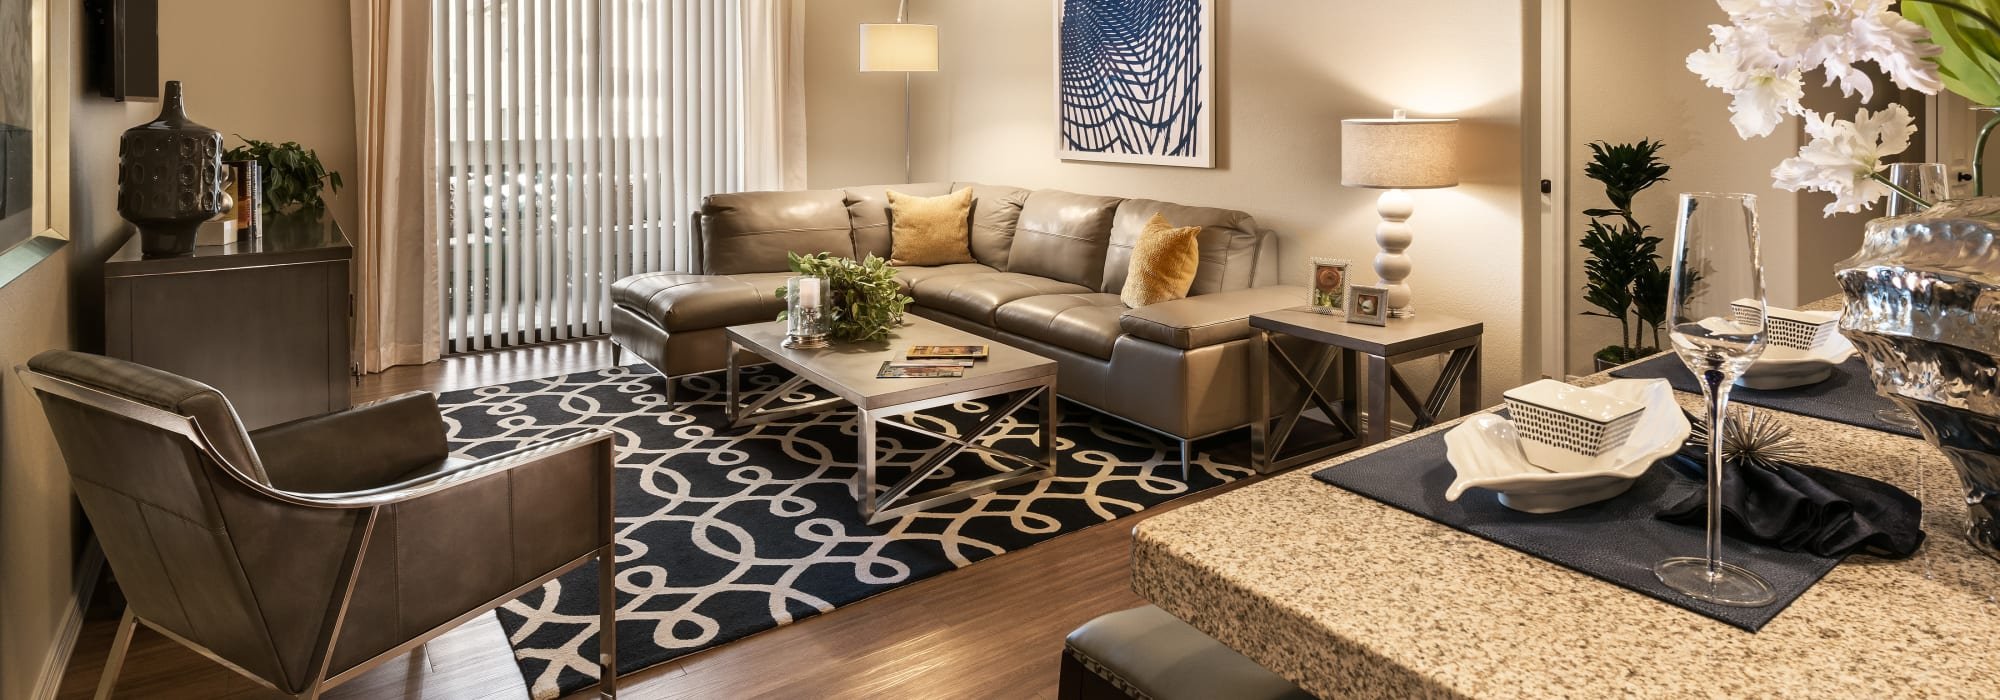 Large decorated living room at San Valencia in Chandler, Arizona